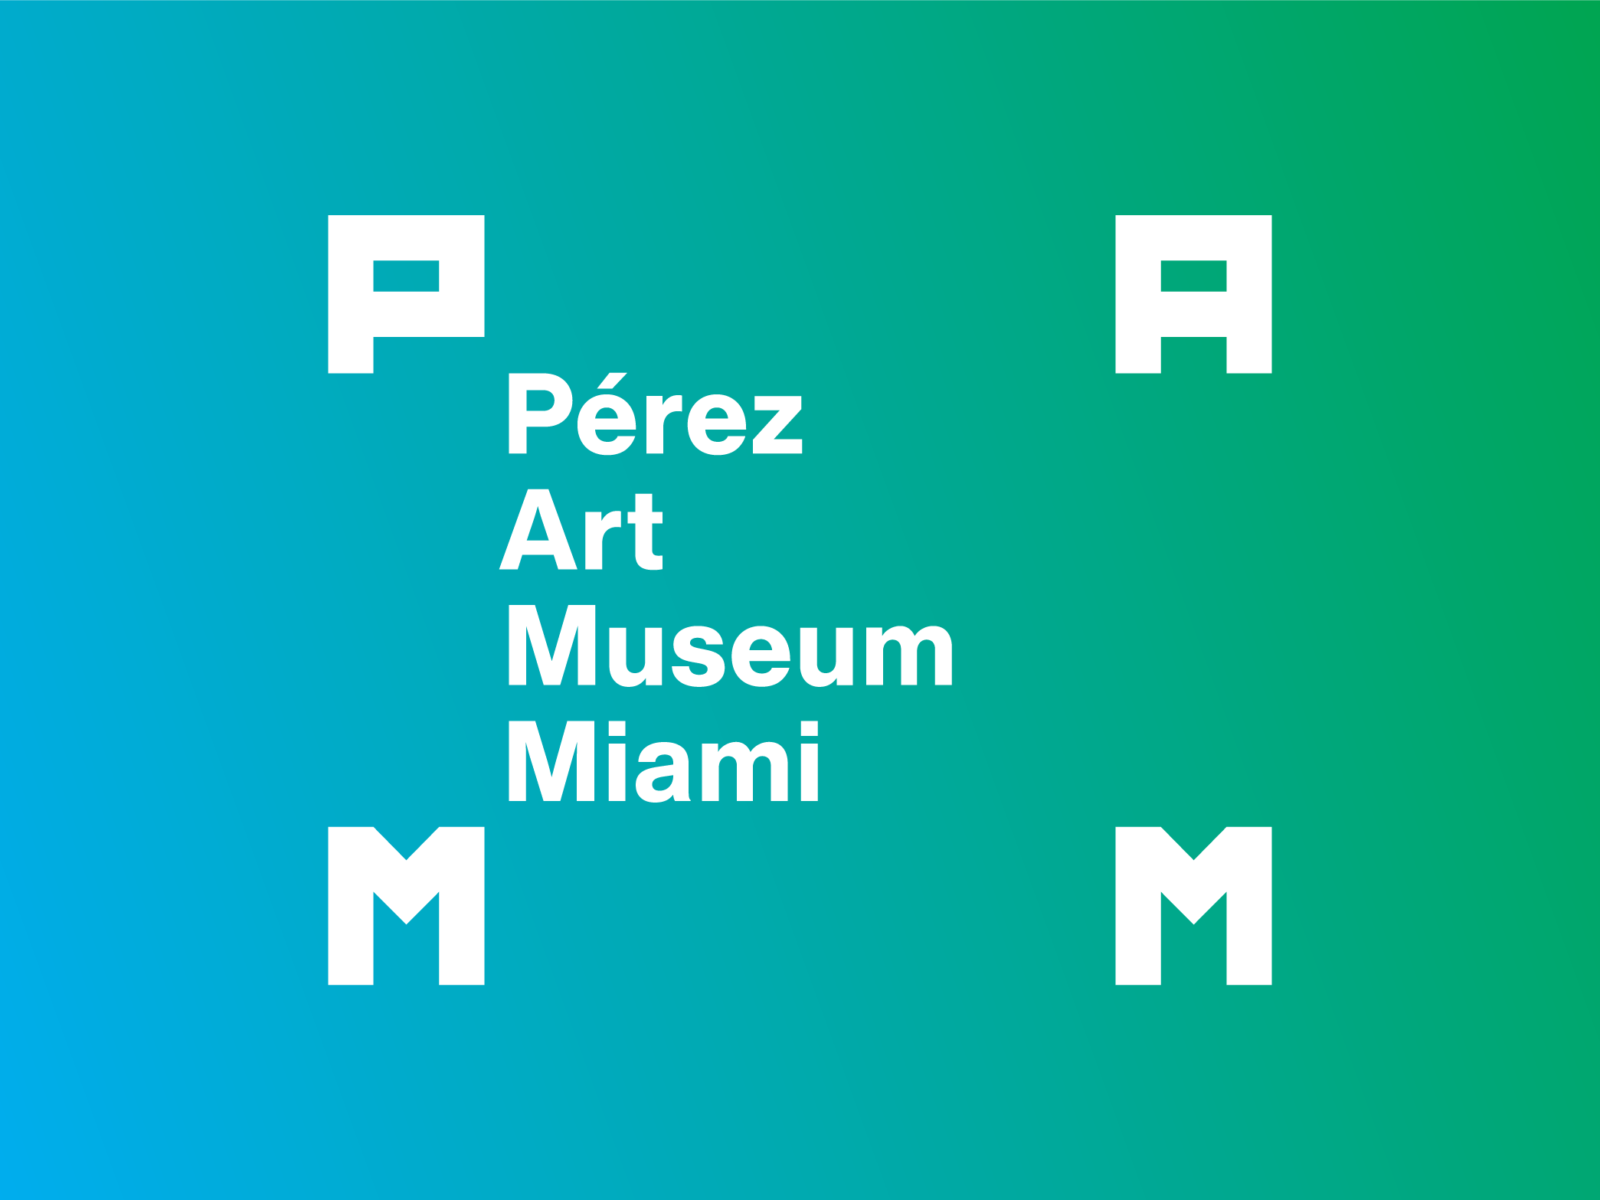 Best of Doral™ Museums introduces Perez Art Museum Miami.